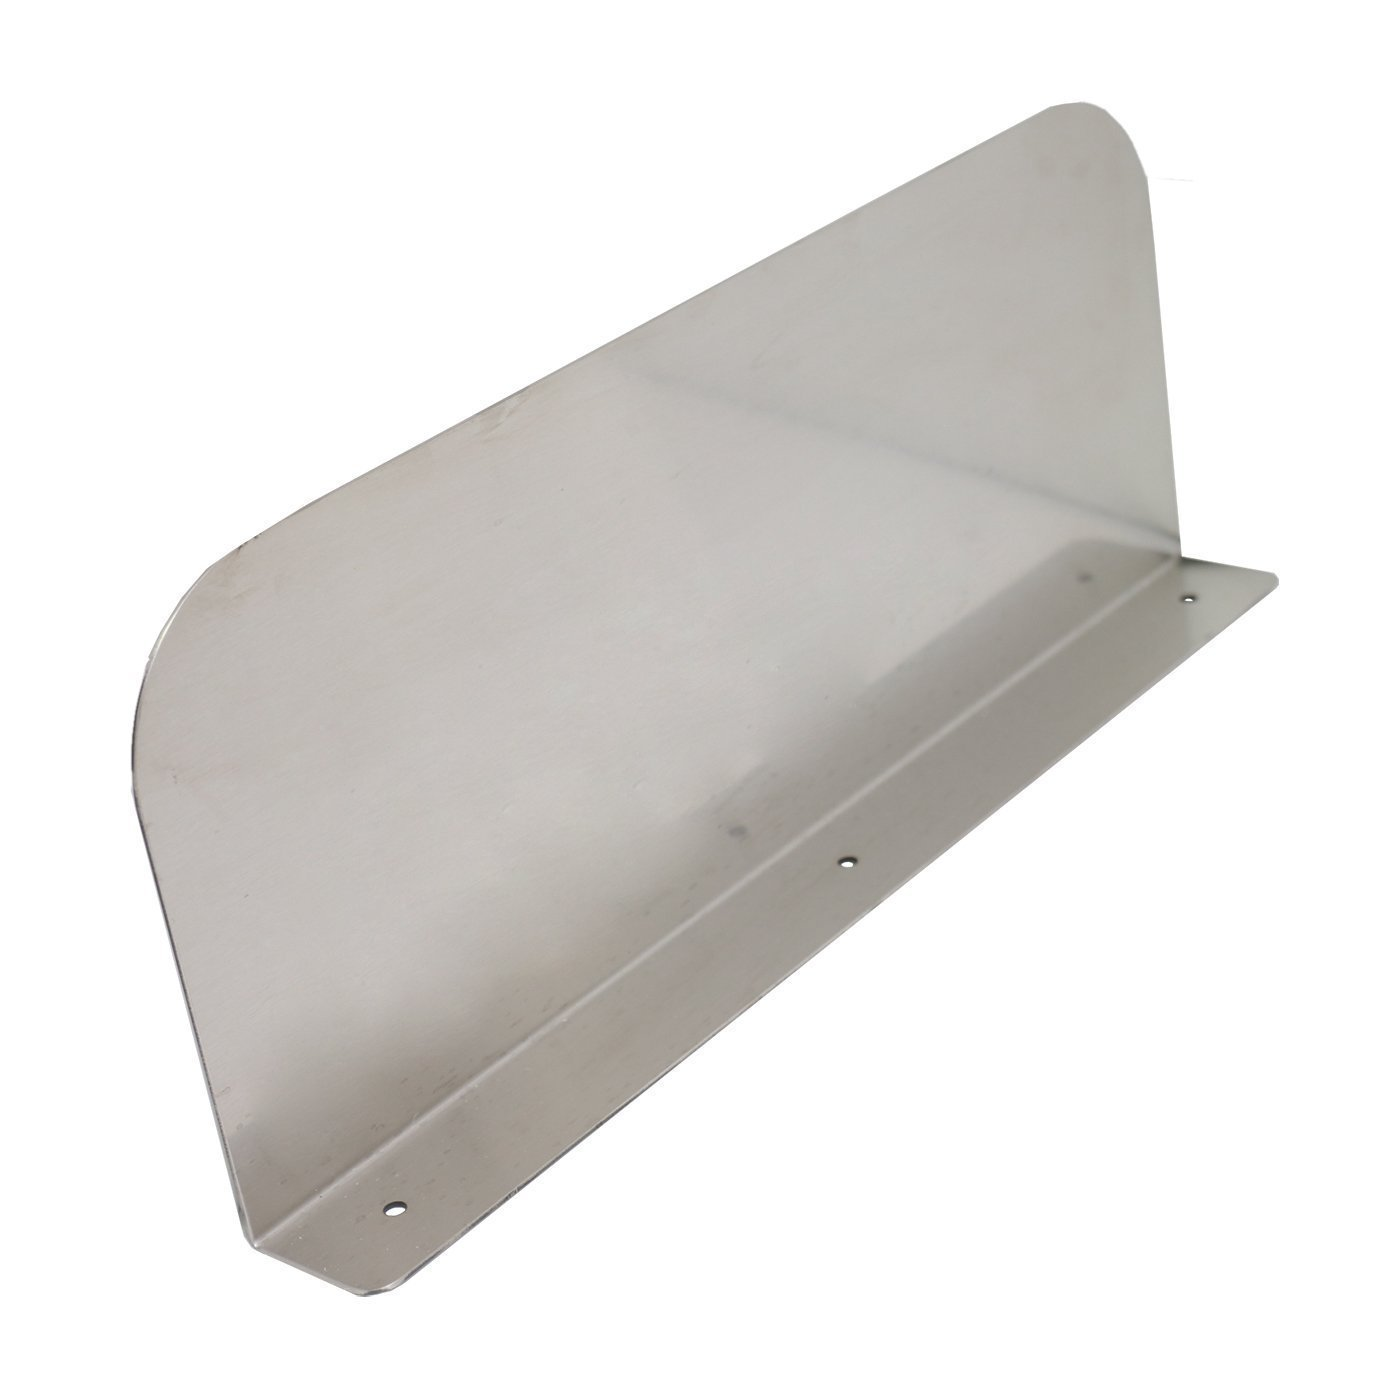 DuraSteel Stainless Steel Splash Guard - 15'' x 6'' Wall Mount - For Commercial Restaurant Hand Sink and Compartment Prep Sink Mounting Type